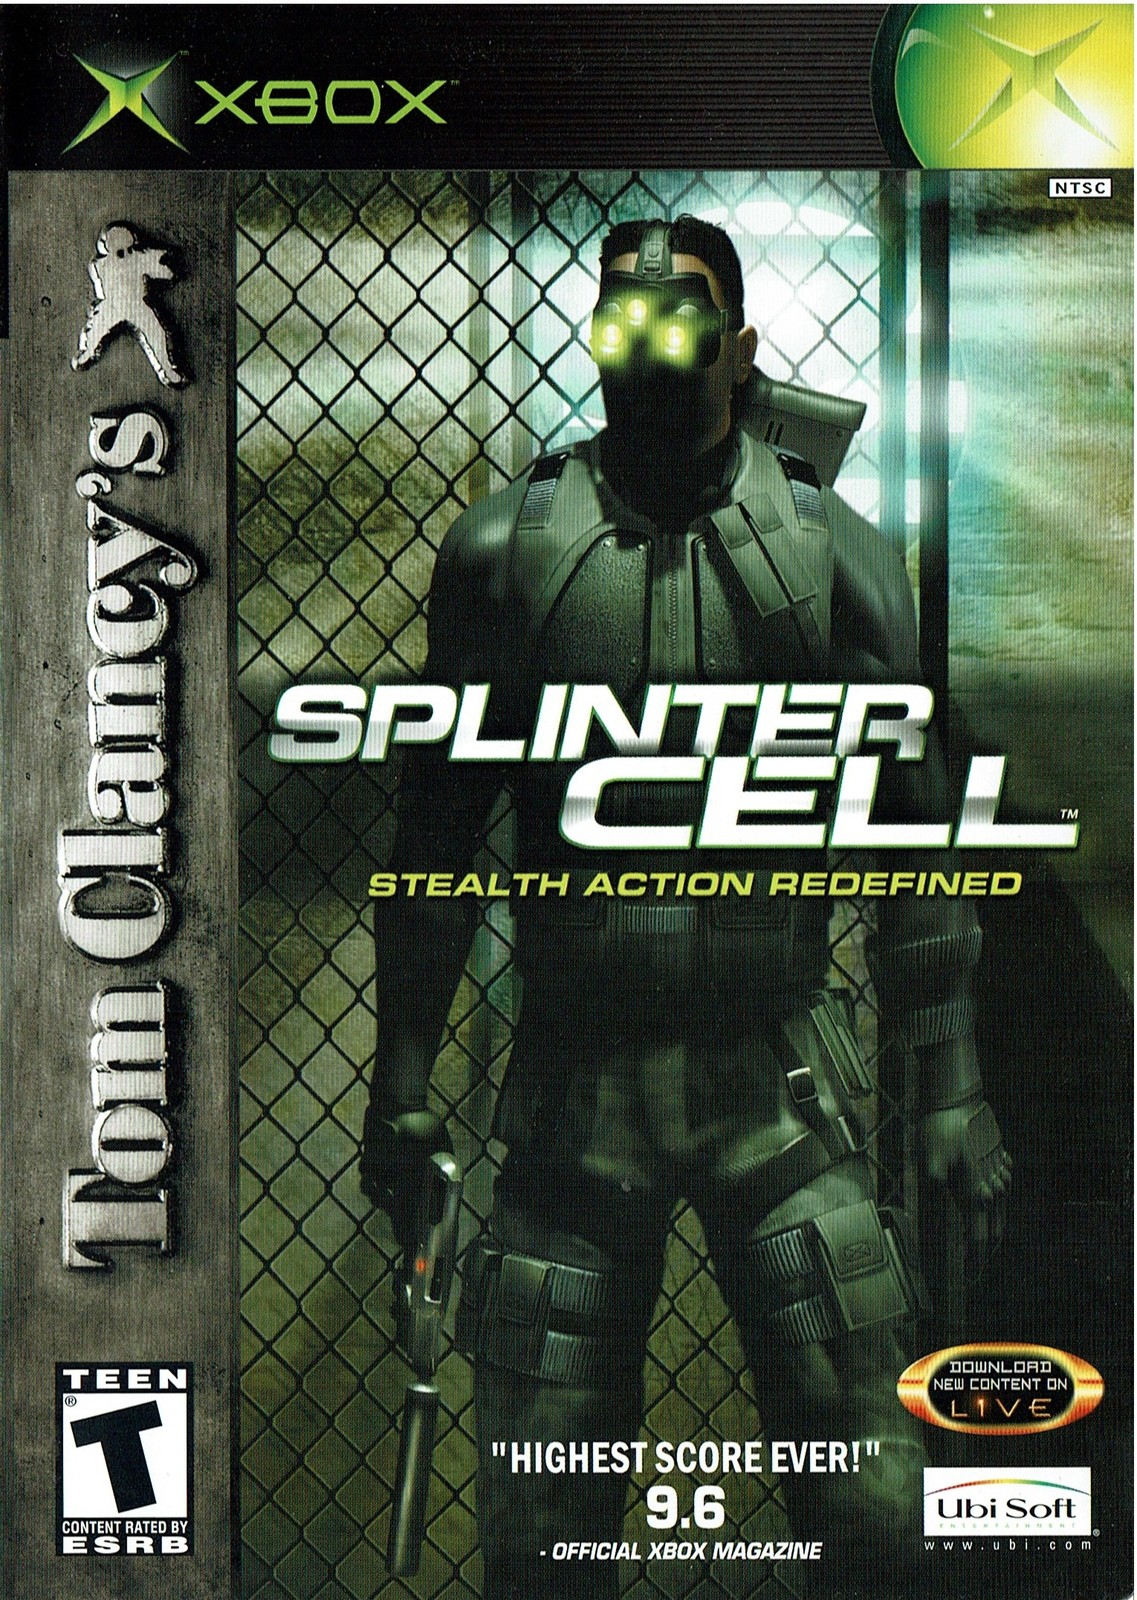 Tom Clancy's Splinter Cell, Xbox, SCEL-0382, Complete, Very Good Condition